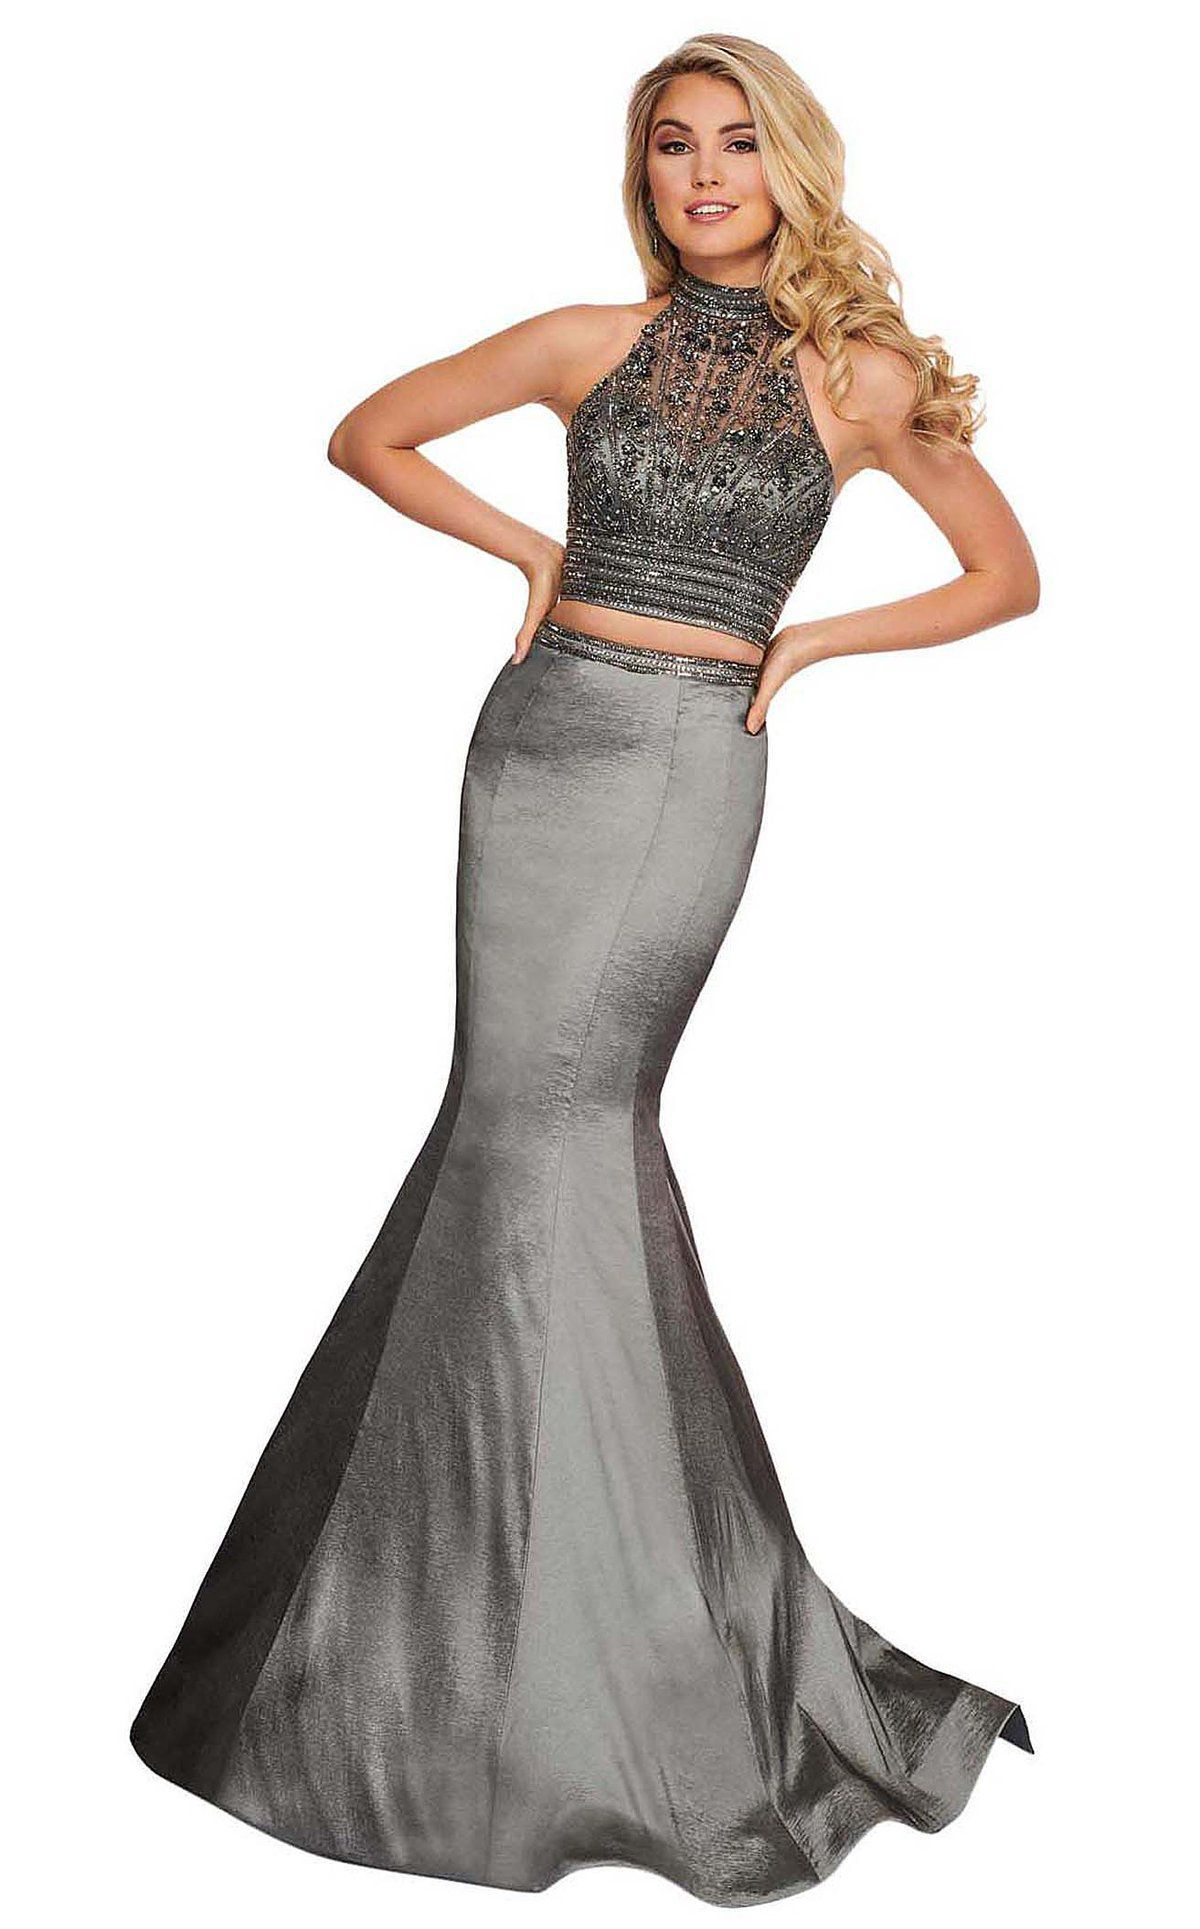 Style 6511 Rachel Allan Silver Size 4 Prom Pageant Halter Tall Height Mermaid Dress on Queenly